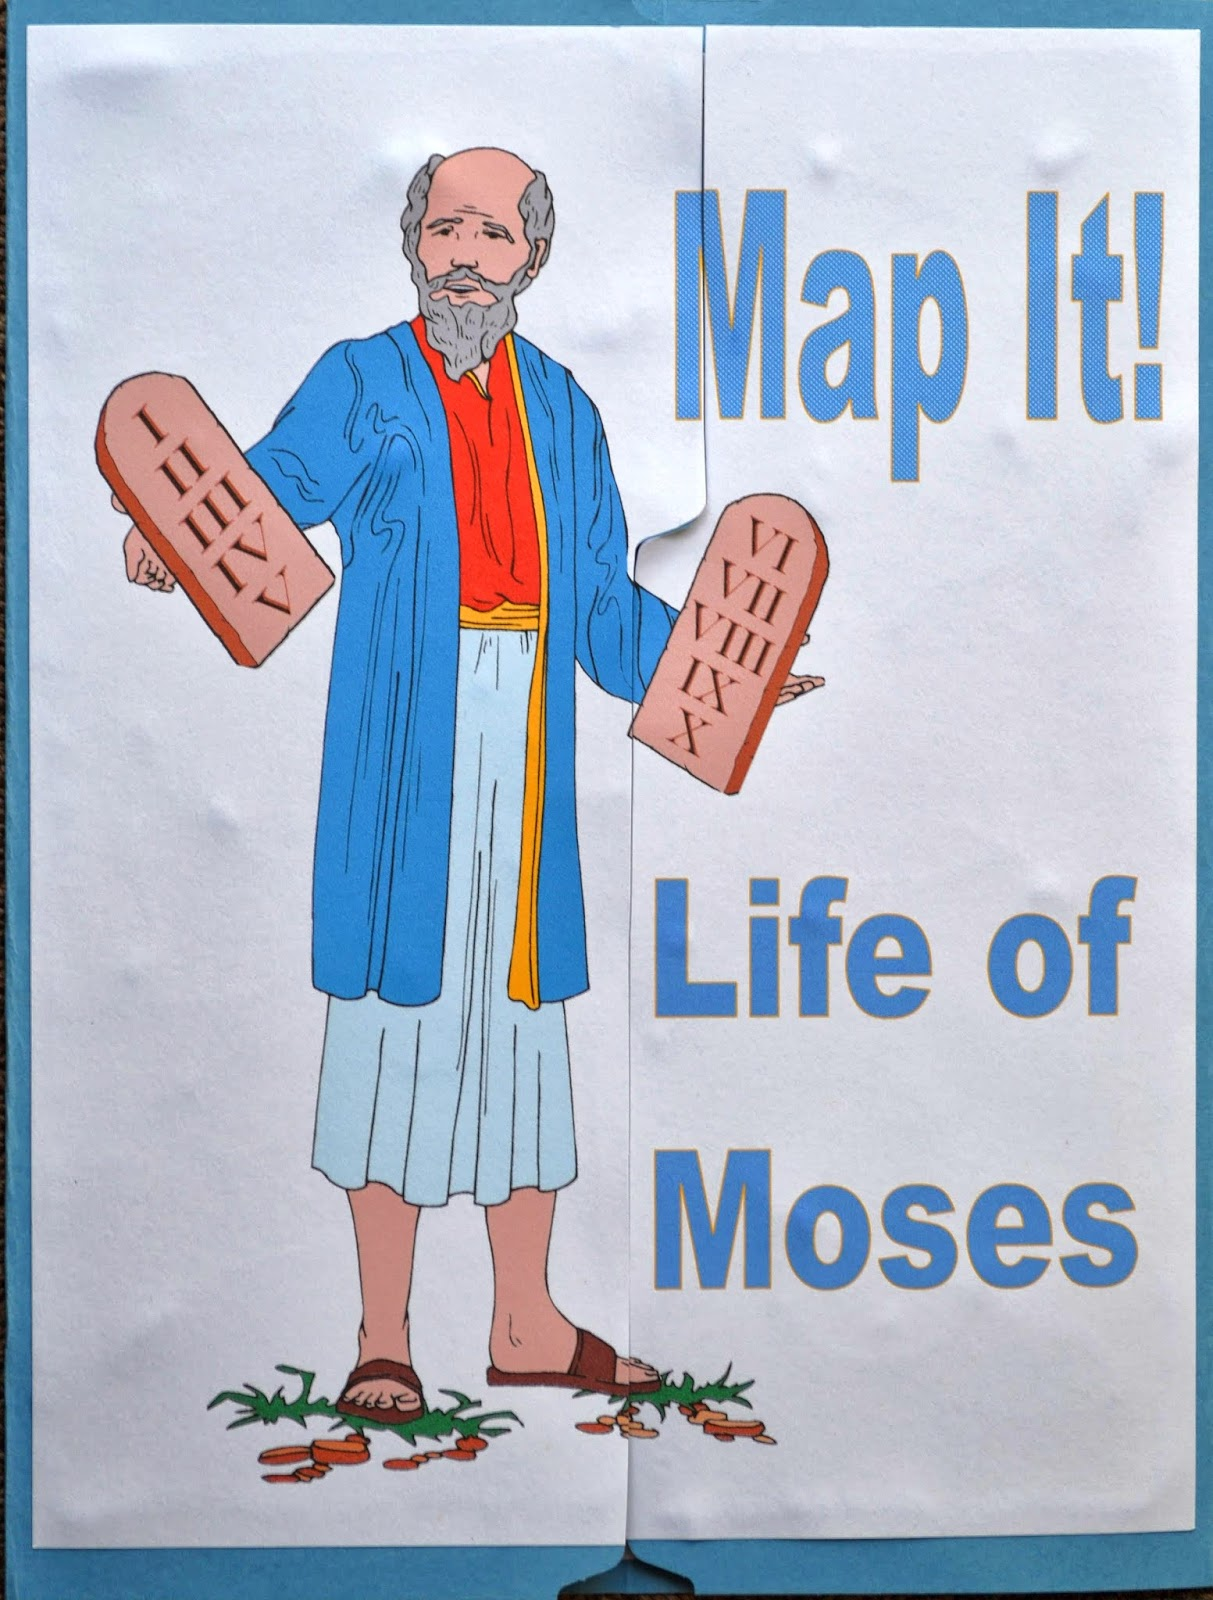 http://kidsbibledebjackson.blogspot.com/2013/08/life-of-moses-map-it-file-folder.html